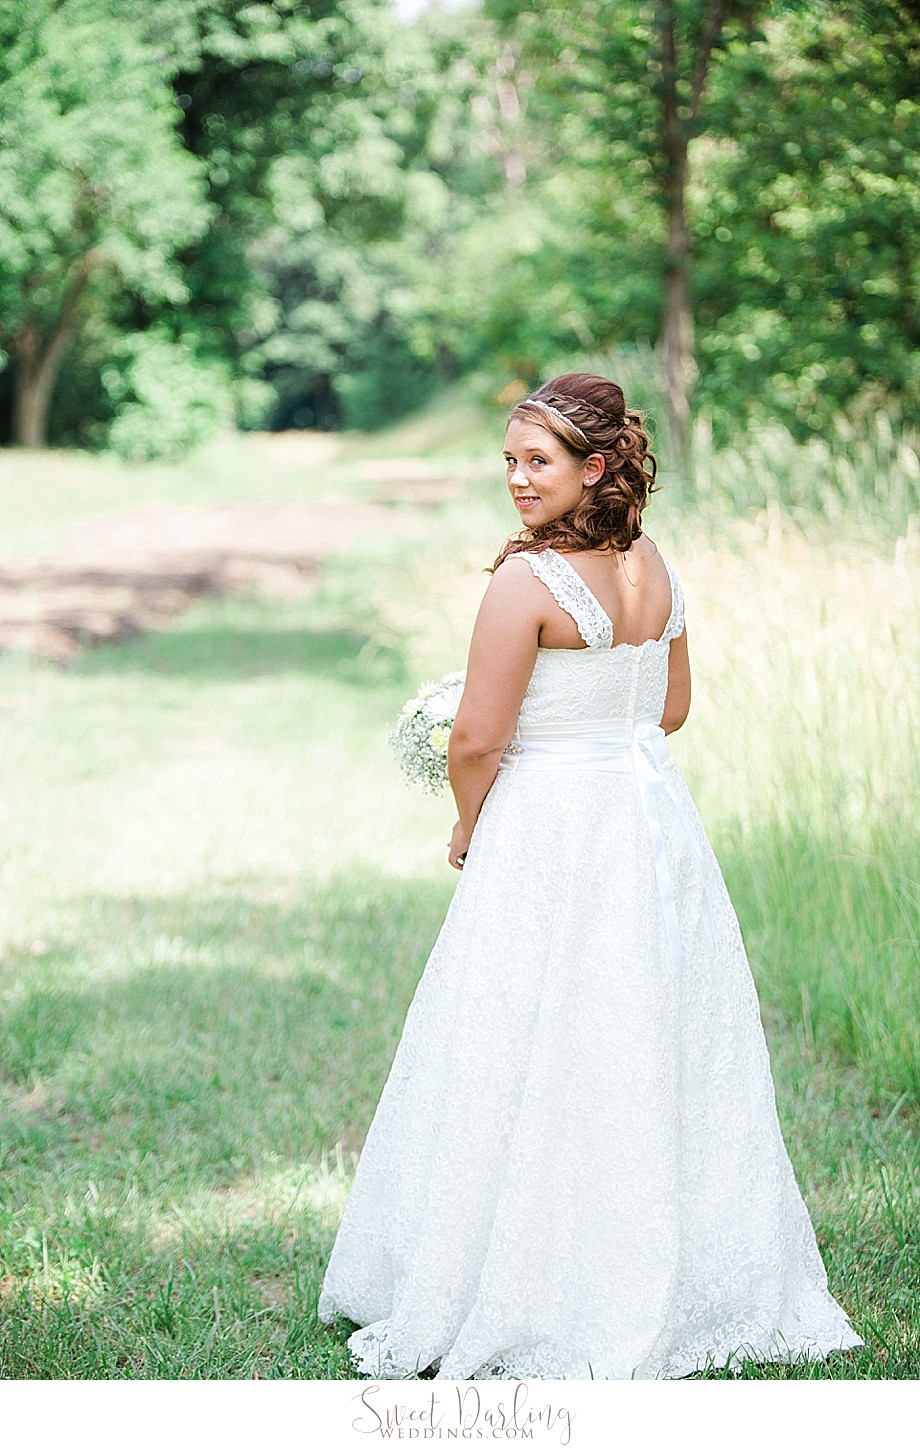 Bride in white lace wedding dress outdoors